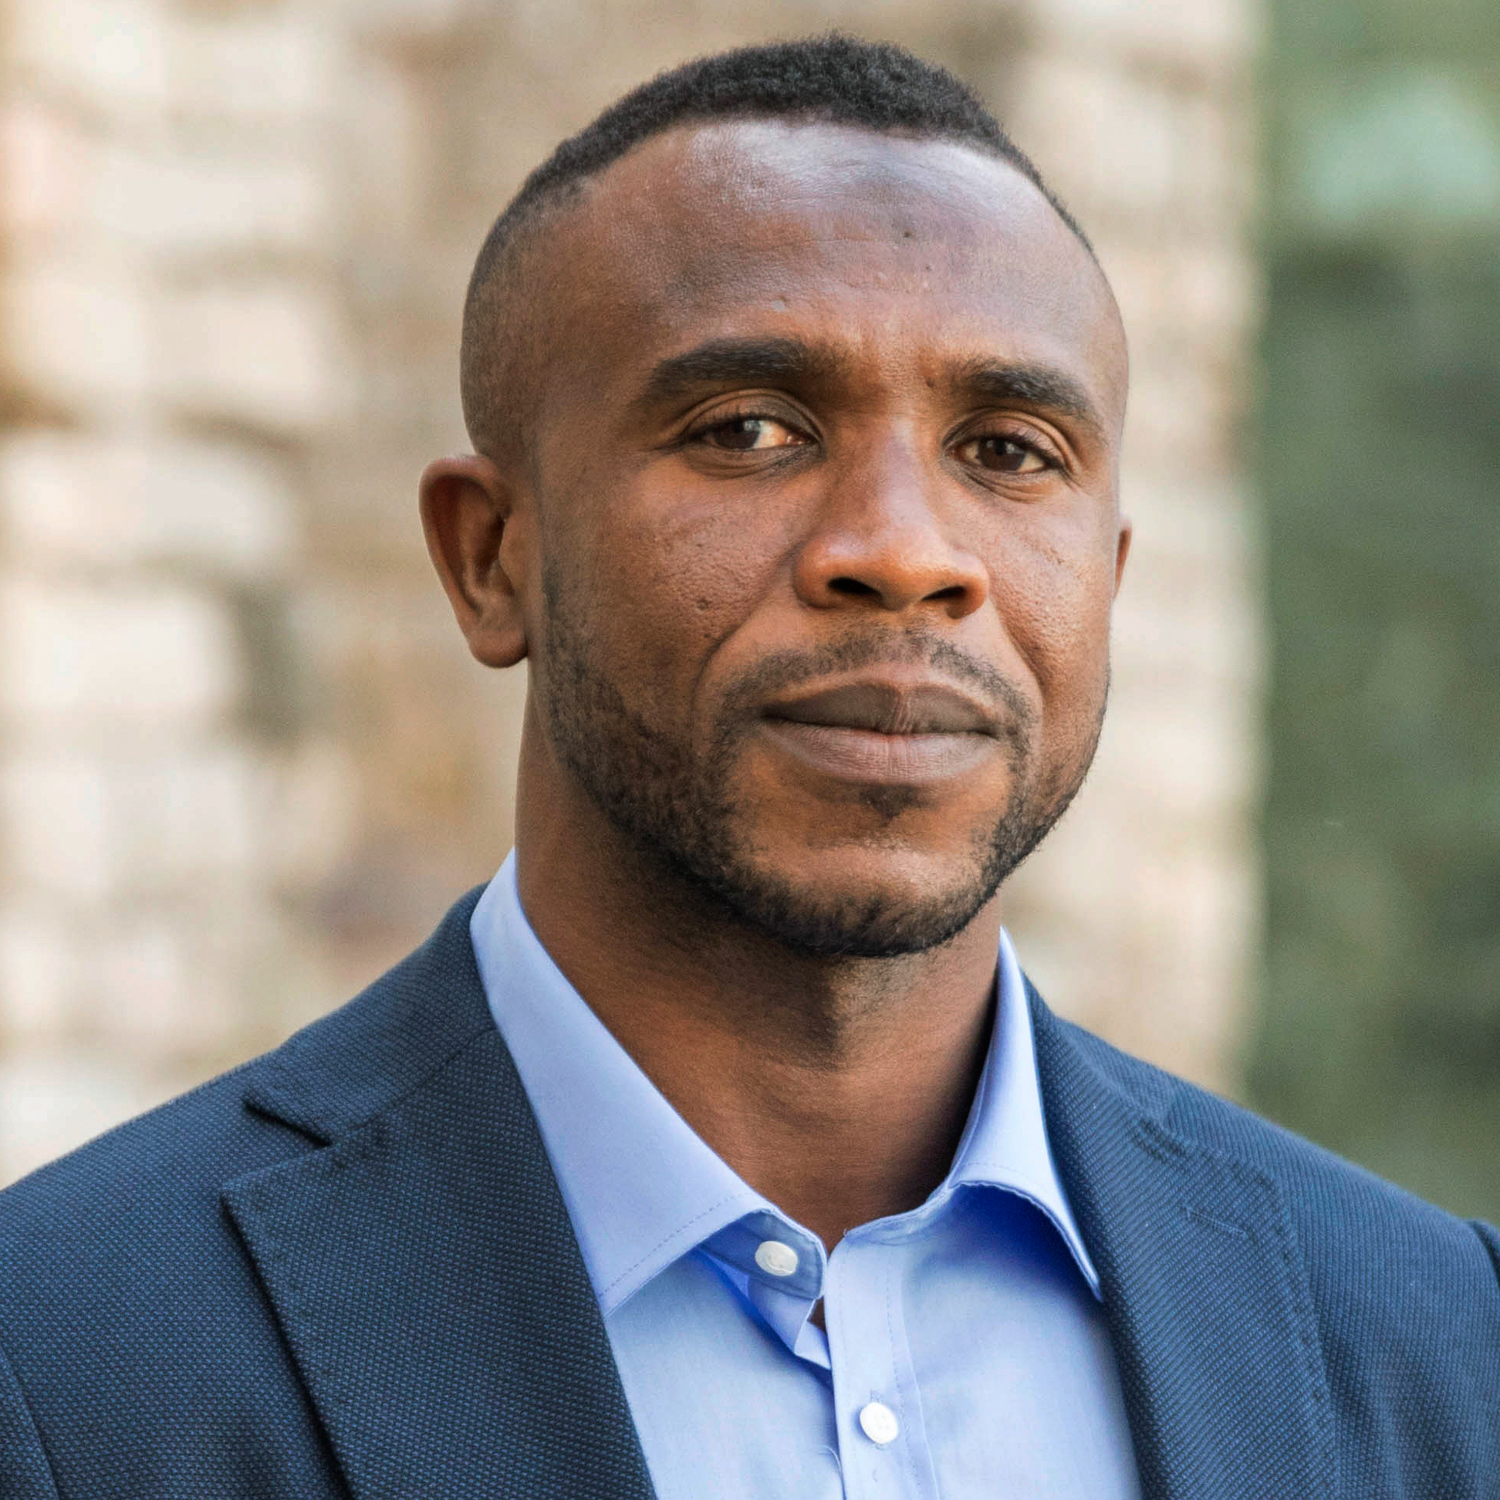 Lamin Fadera, member of the European Migrant Advisory Board